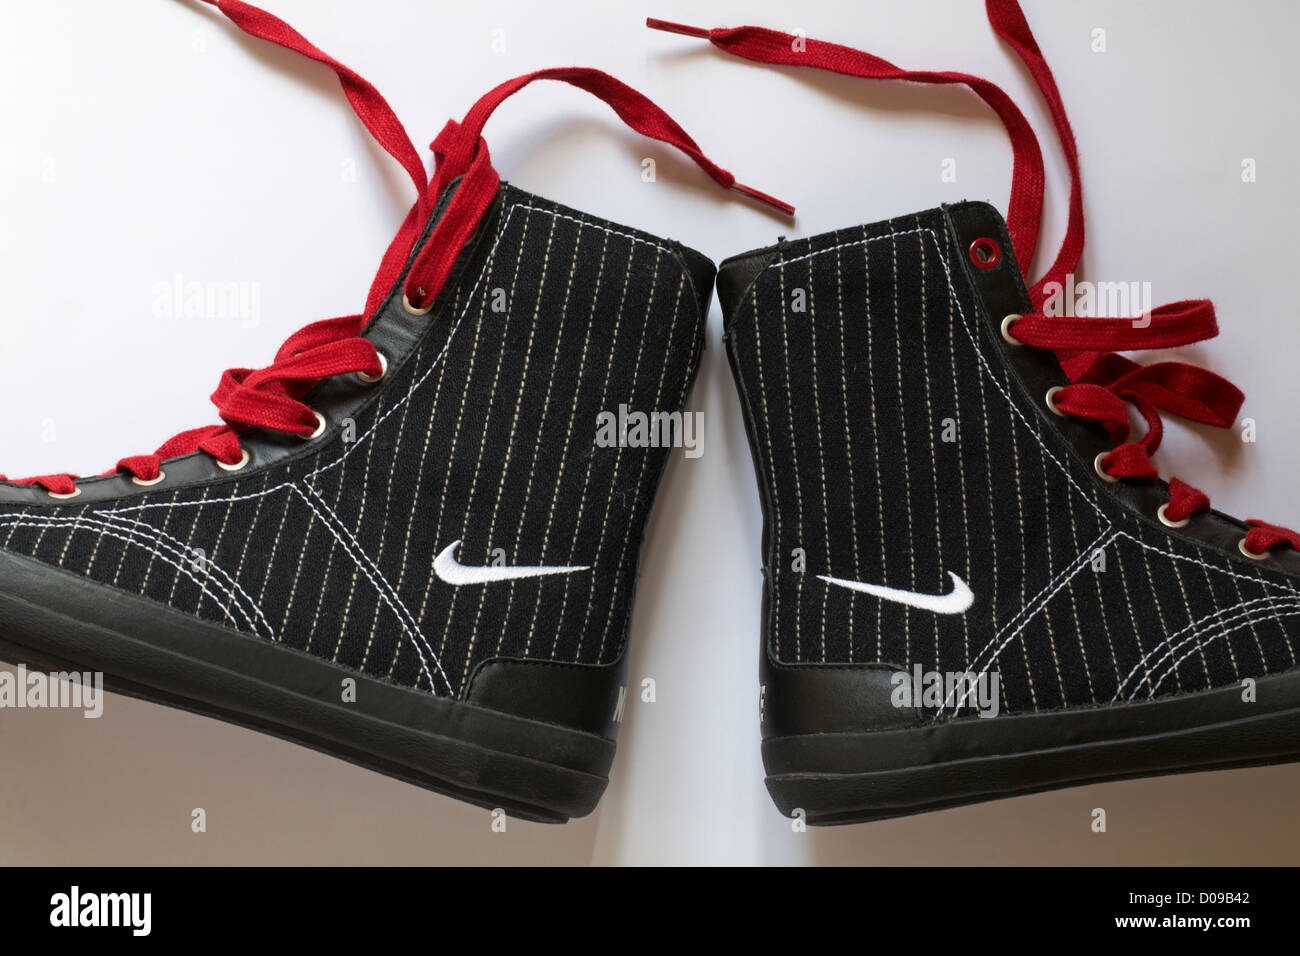 3b3ec10839a4 Pair of boots with Nike logo and red laces set on white background - Stock  Image